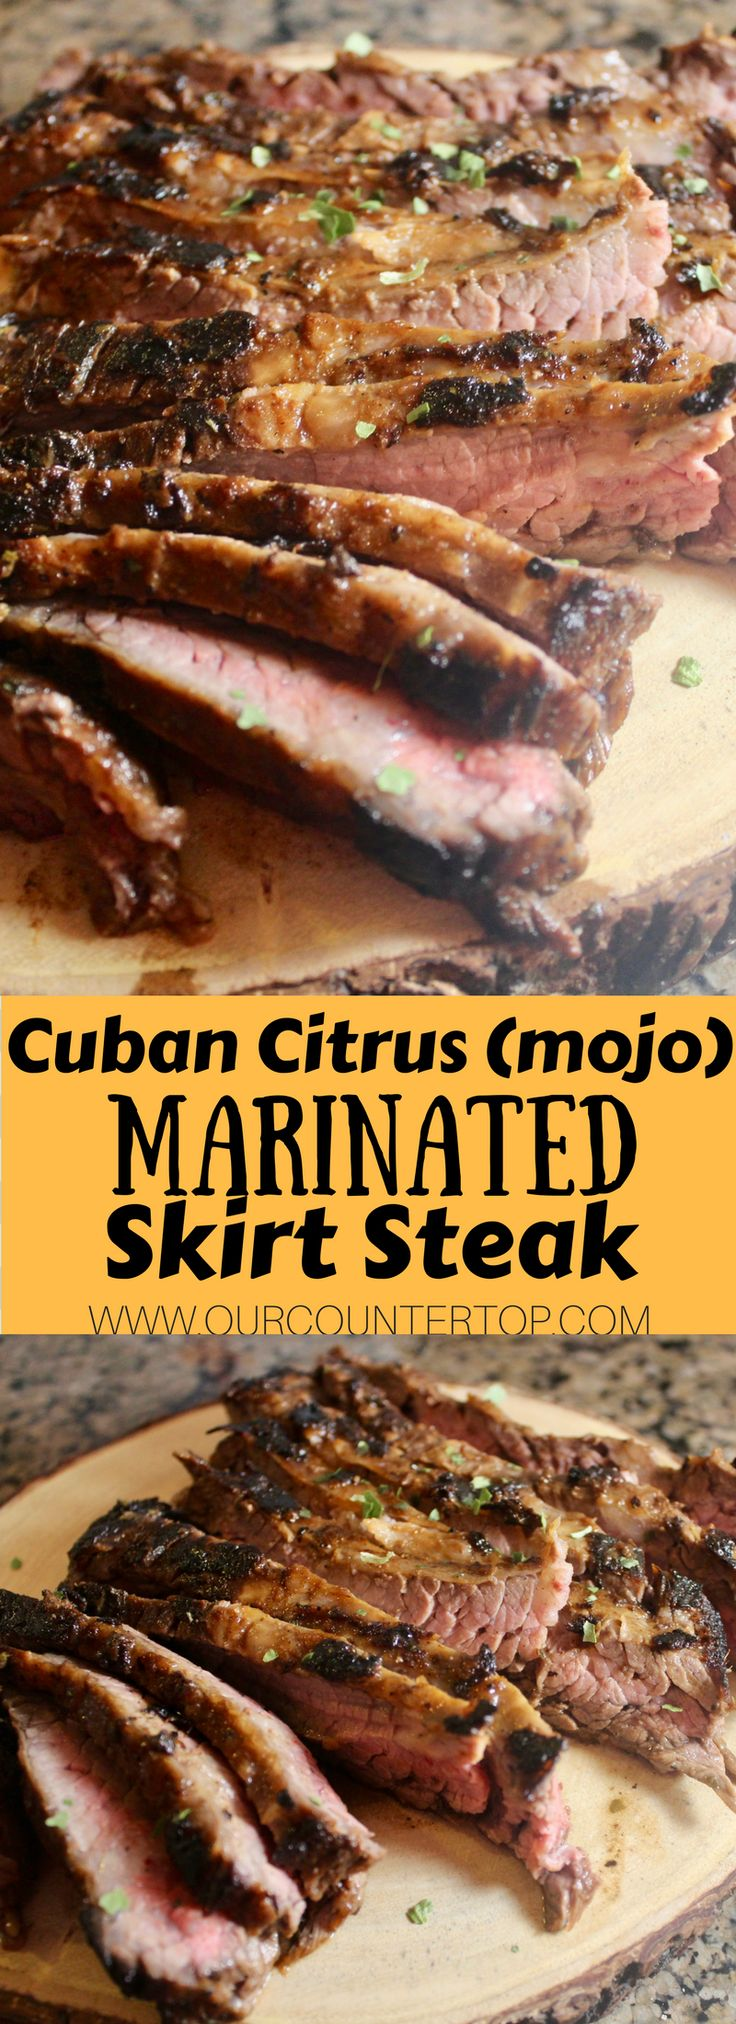 This mojo-marinated Cuban skirt steak is packed with so much flavor! The whole family will love it.